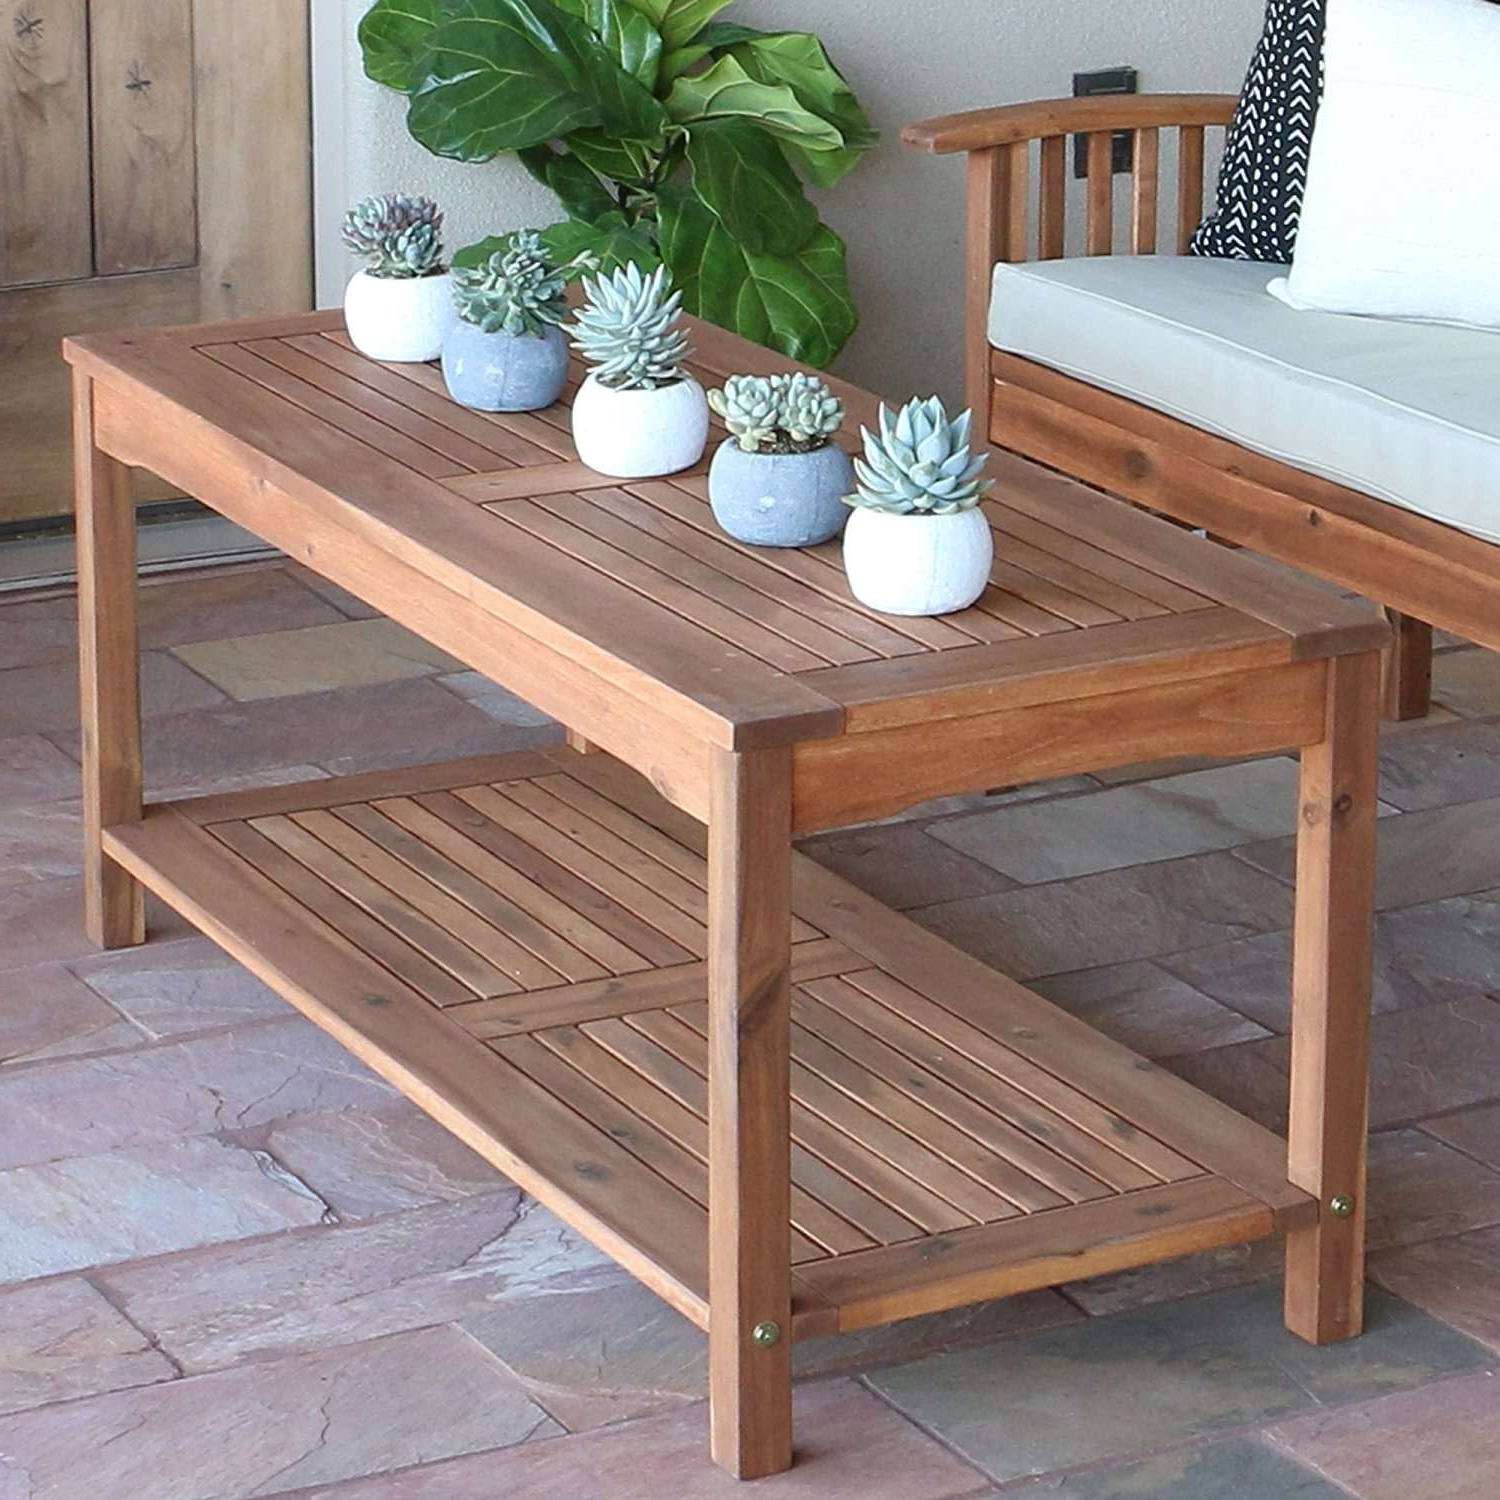 9 Crate And Barrel Concrete Coffee Table Gallery | Coffee Tables Ideas Regarding Parsons Travertine Top & Dark Steel Base 48x16 Console Tables (View 19 of 20)